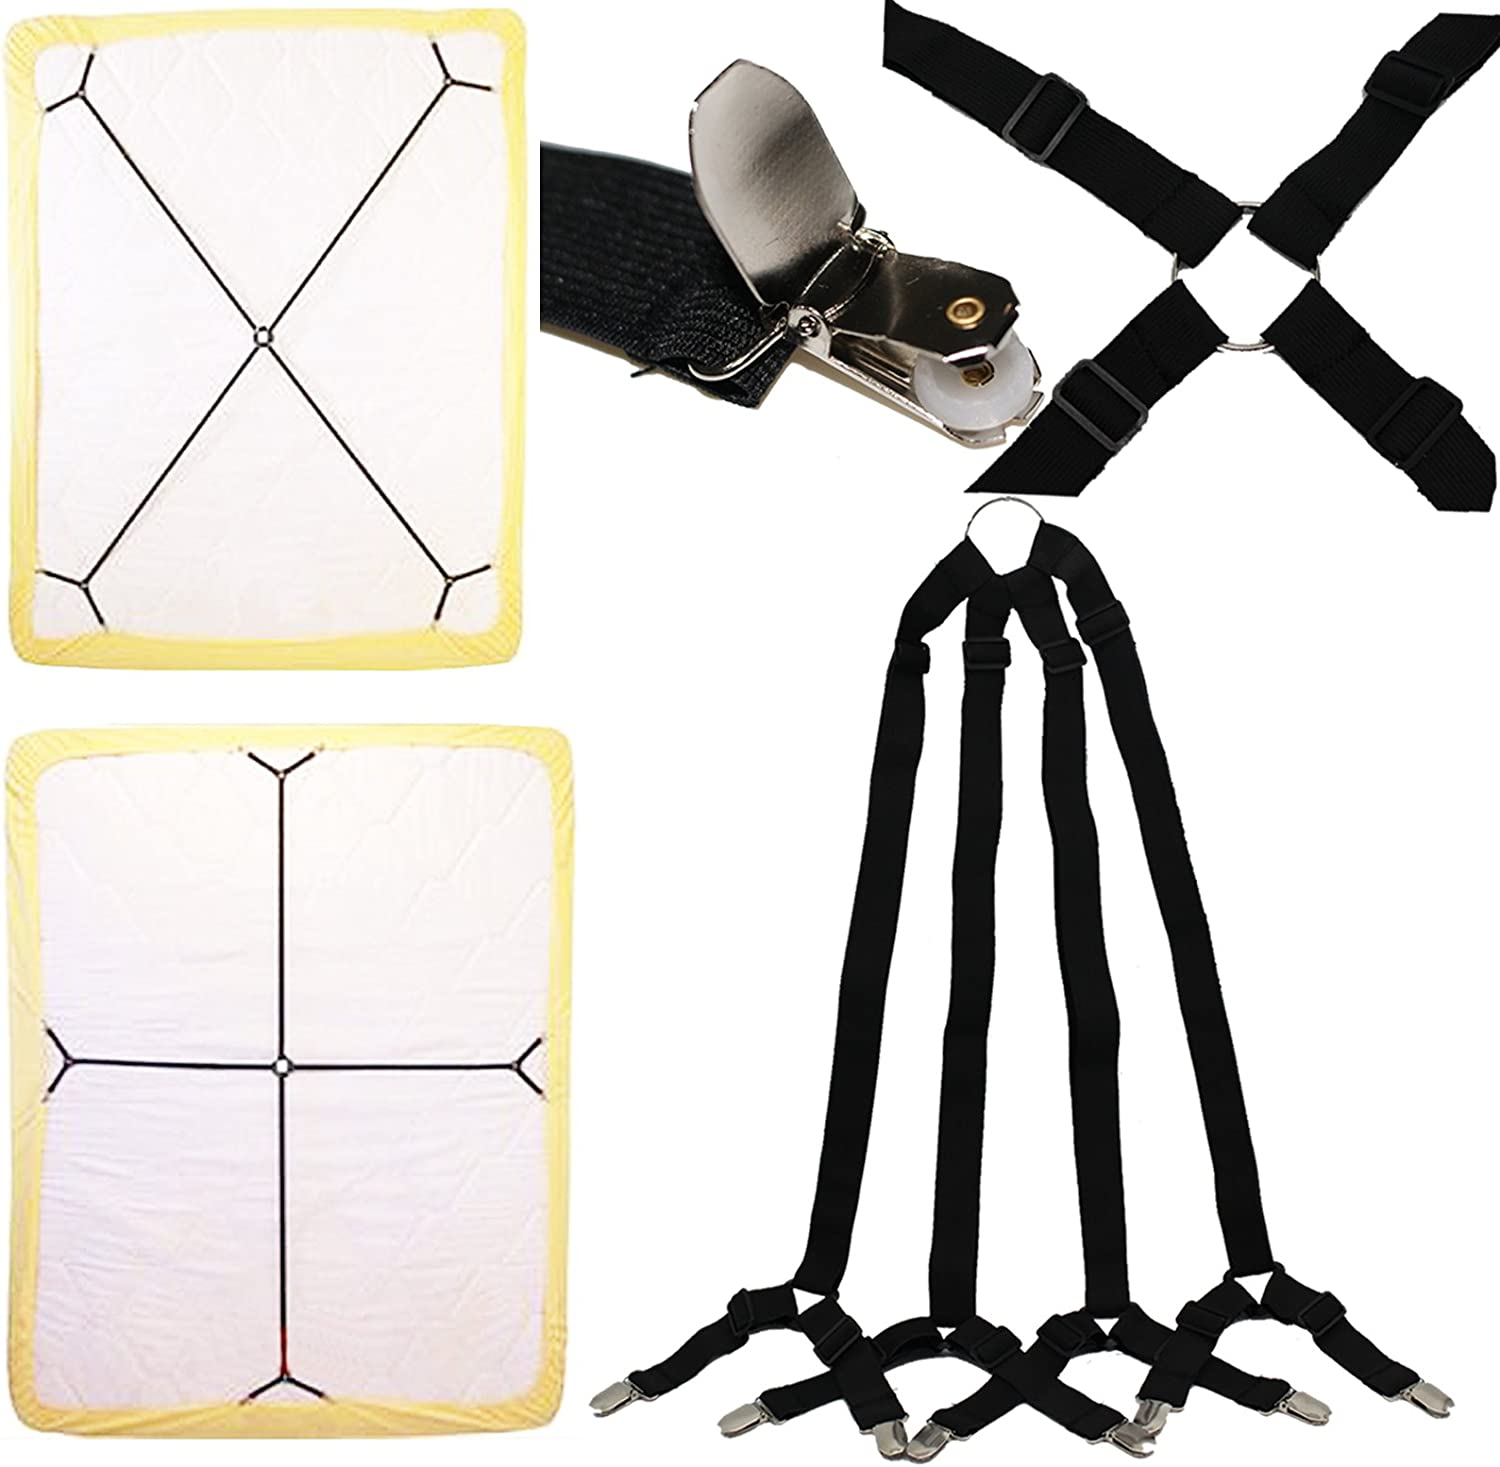 Yaobabymu 2pcs Sheet Bed Suspenders Adjustable Crisscross Fitted Sheet Band Straps Grippers Adjustable Mattress Pad Duvet Cover Sheet Corner Holder Elastic Fasteners Clips Clippers